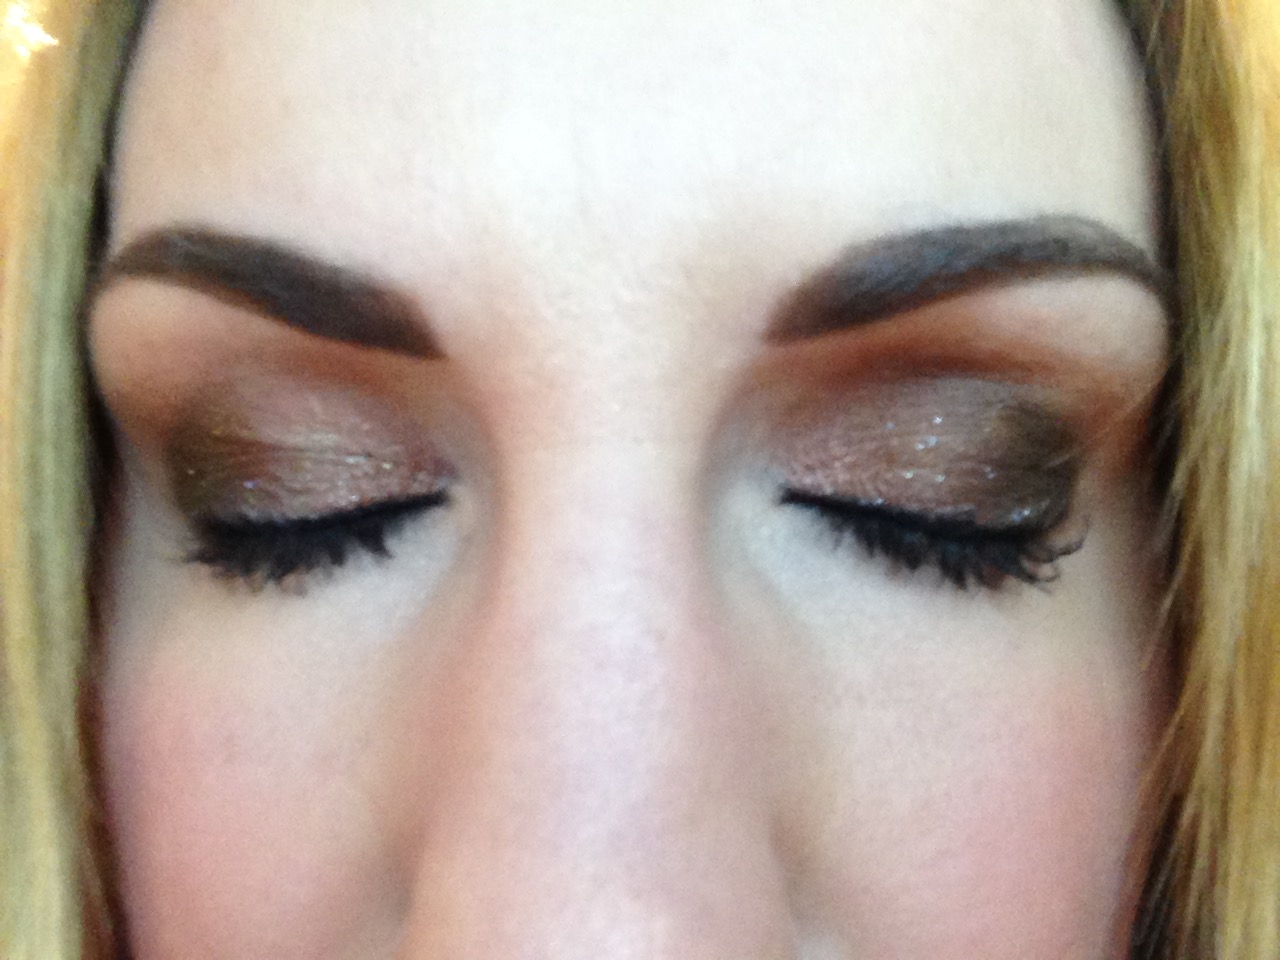 So pretty (the make up, not the angle!)